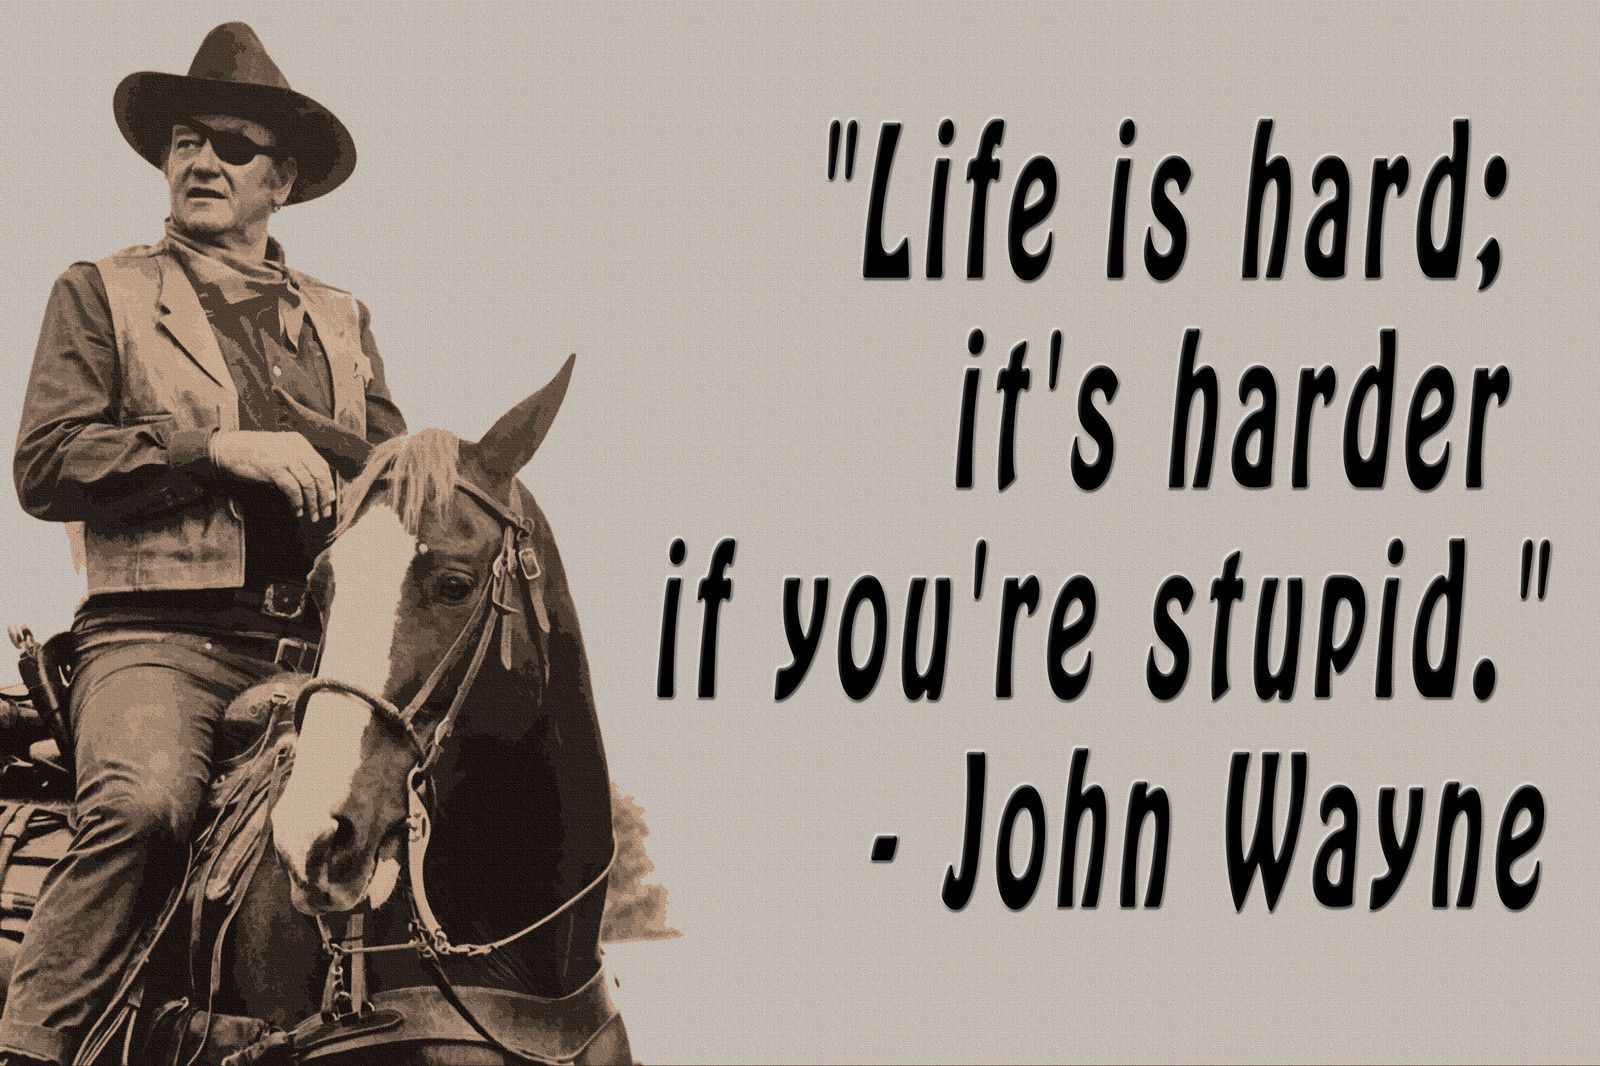 John Wayne Life Is Harder Quote Paper Poster Print 12 X18 Life Is Tough Quotes Life Is Hard Quotes Tough Quote